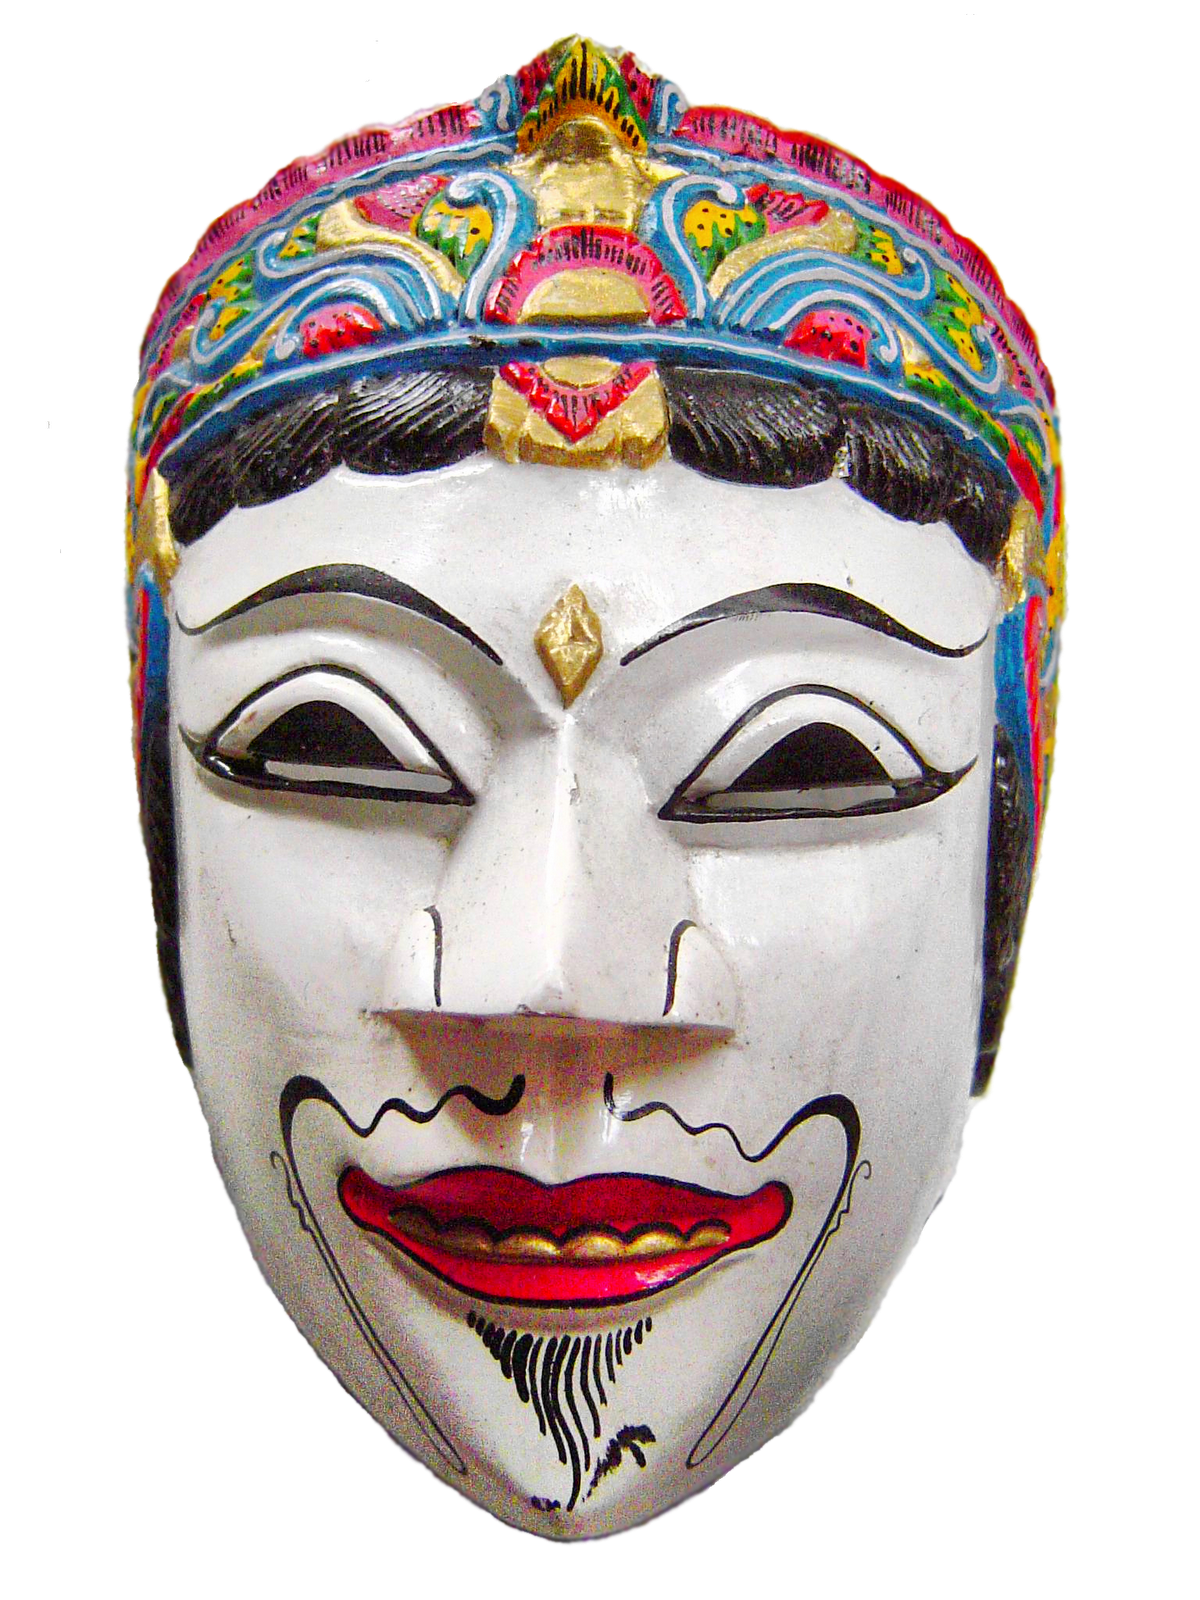 Indonesian Folklore (Folklor Indonesia): The Twin Masks